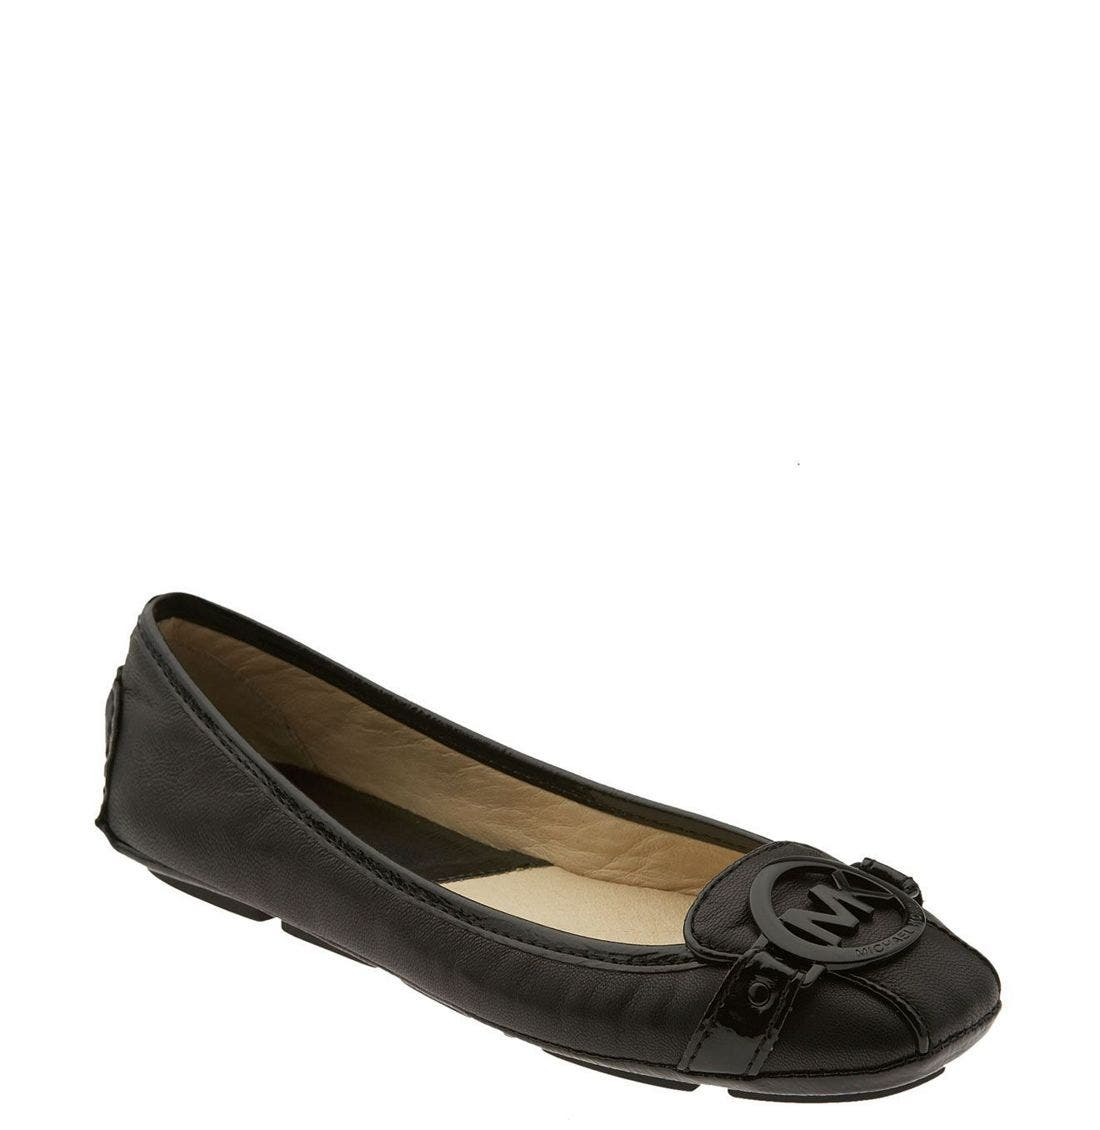 Alternate Image 1 Selected - MICHAEL Michael Kors 'Fulton' Flat (Women)